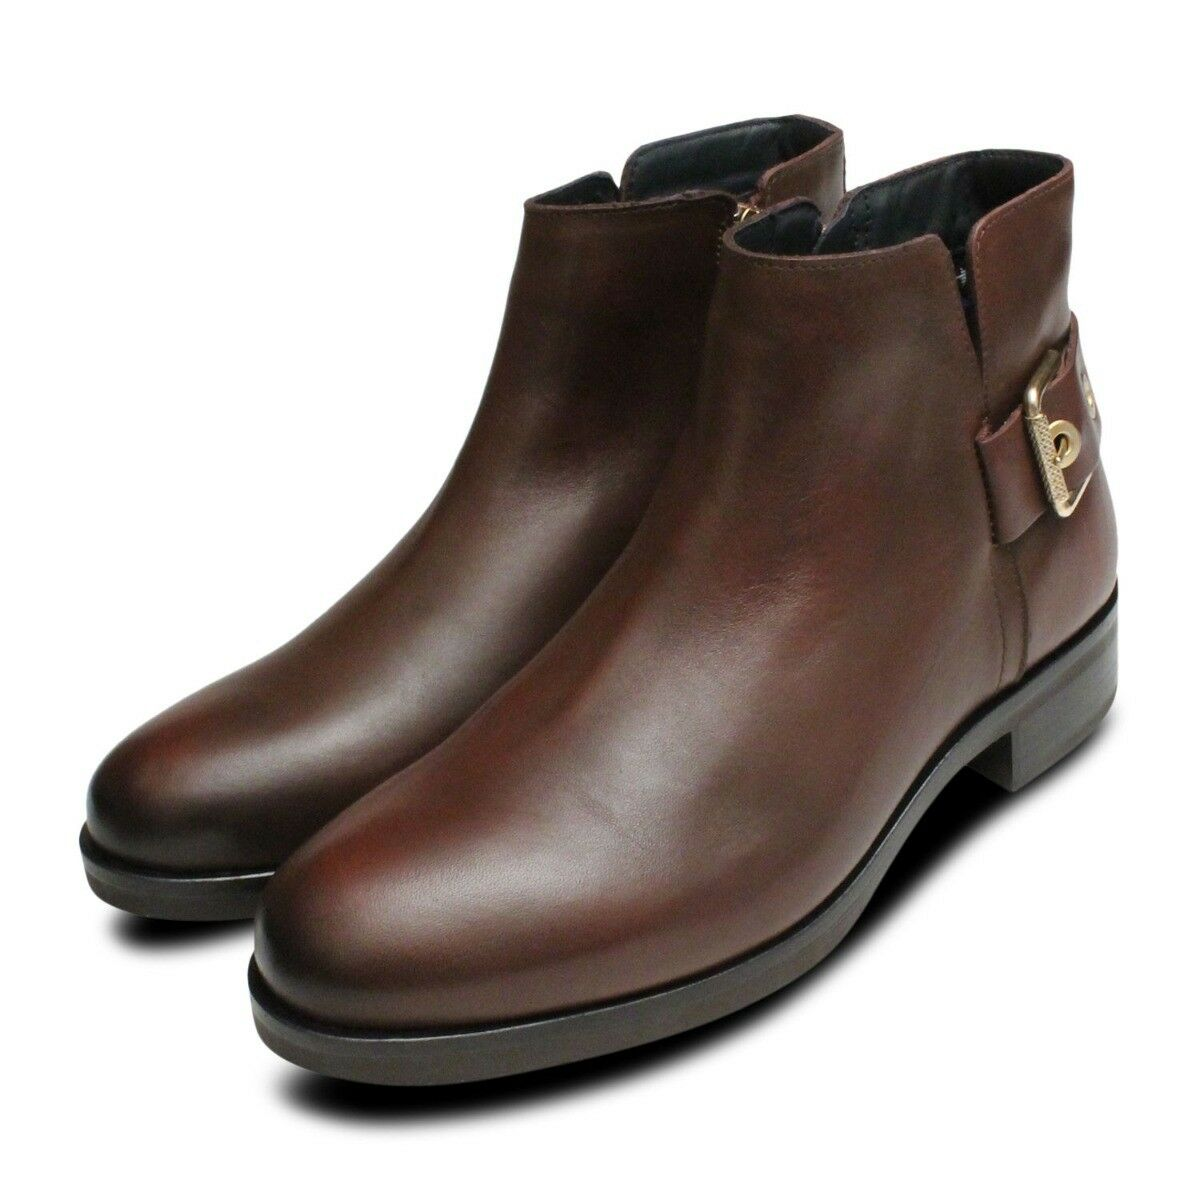 Tessa Tessa Tessa Tommy Hilfiger Gold Buckle Ankle Stiefel in Coffee    00dc24